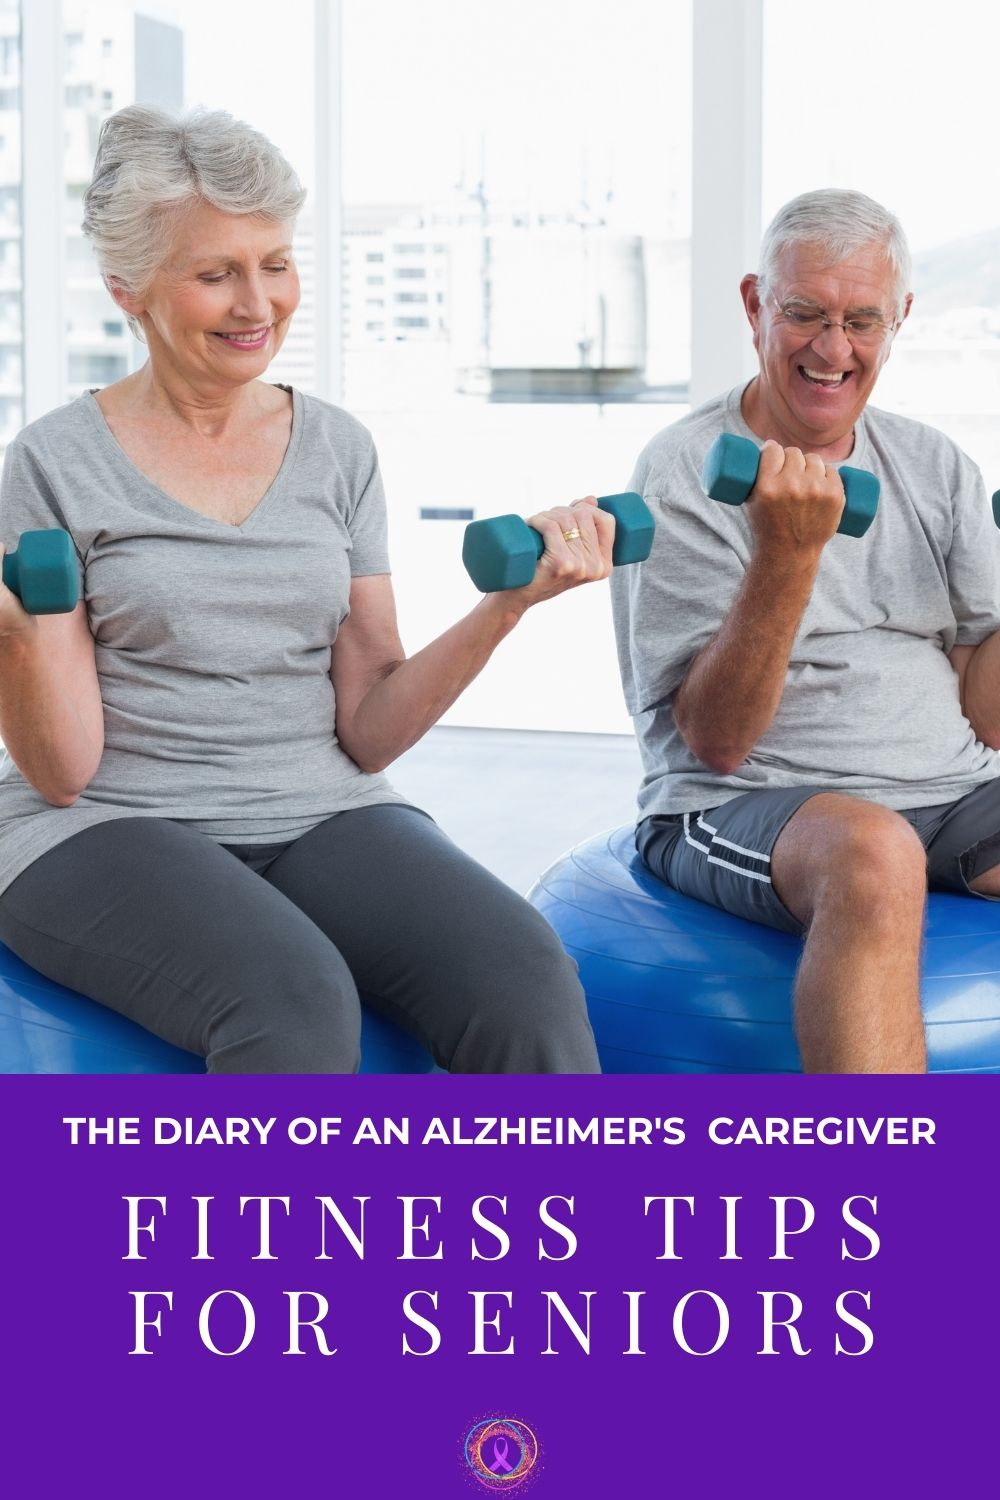 an elderly couple exercising together